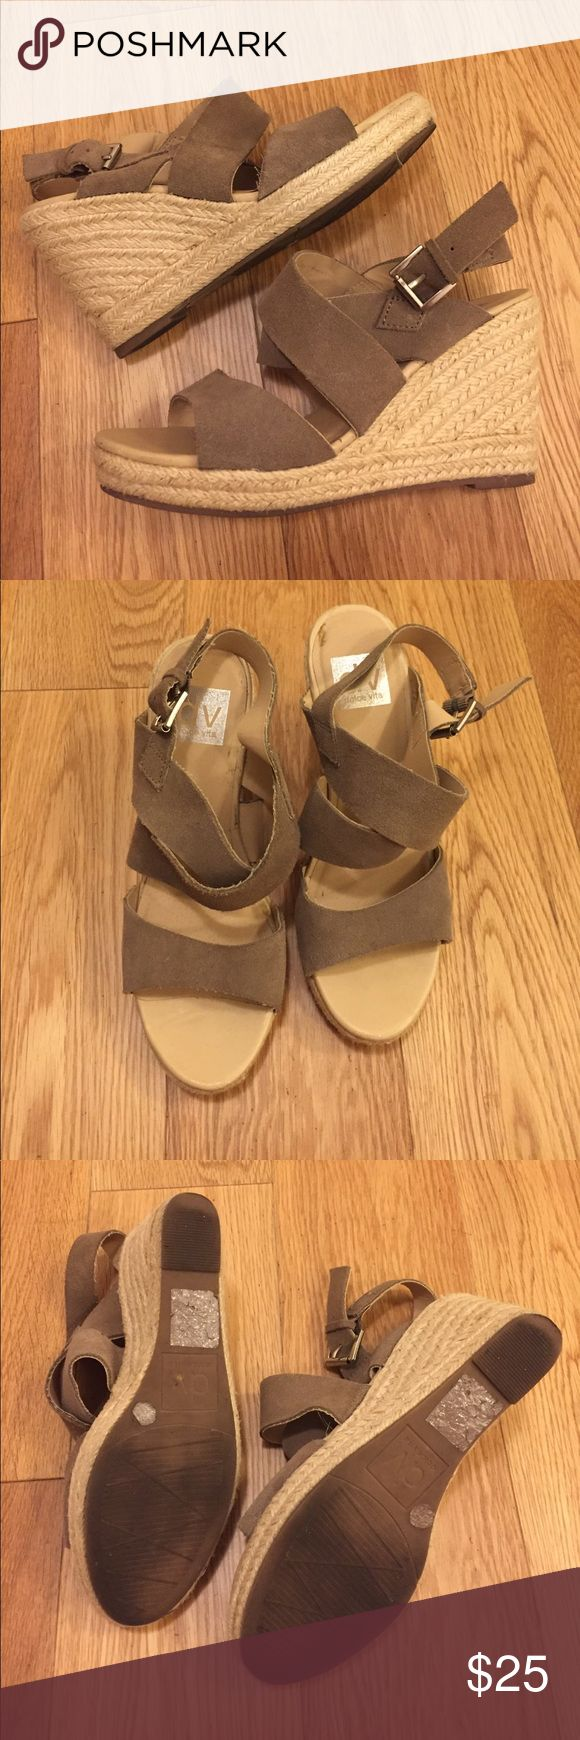 "DV Dolce Vita nude espadrilles wedge 4"" strapping tan nude wedge. Worn a few times DV by Dolce Vita Shoes Espadrilles"